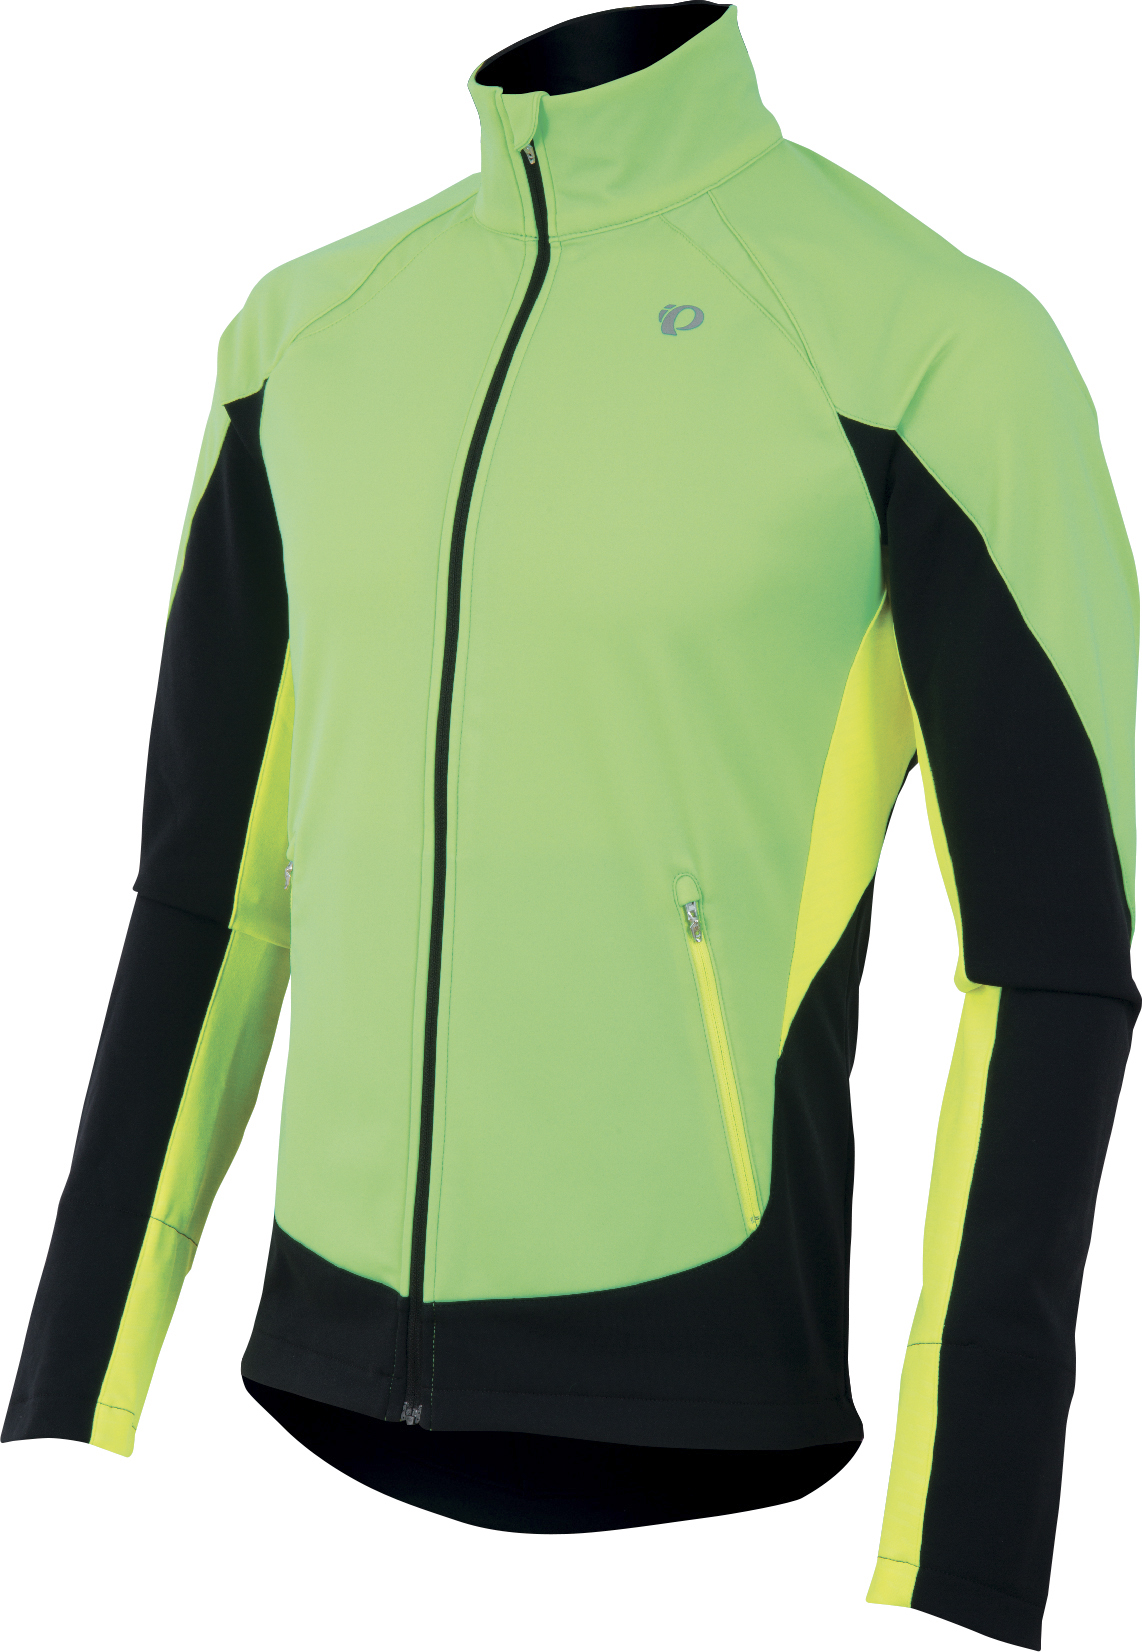 PEARL iZUMi FLY SOFTSHELL RUN bunda, screaming zelená/screaming žlutá, M